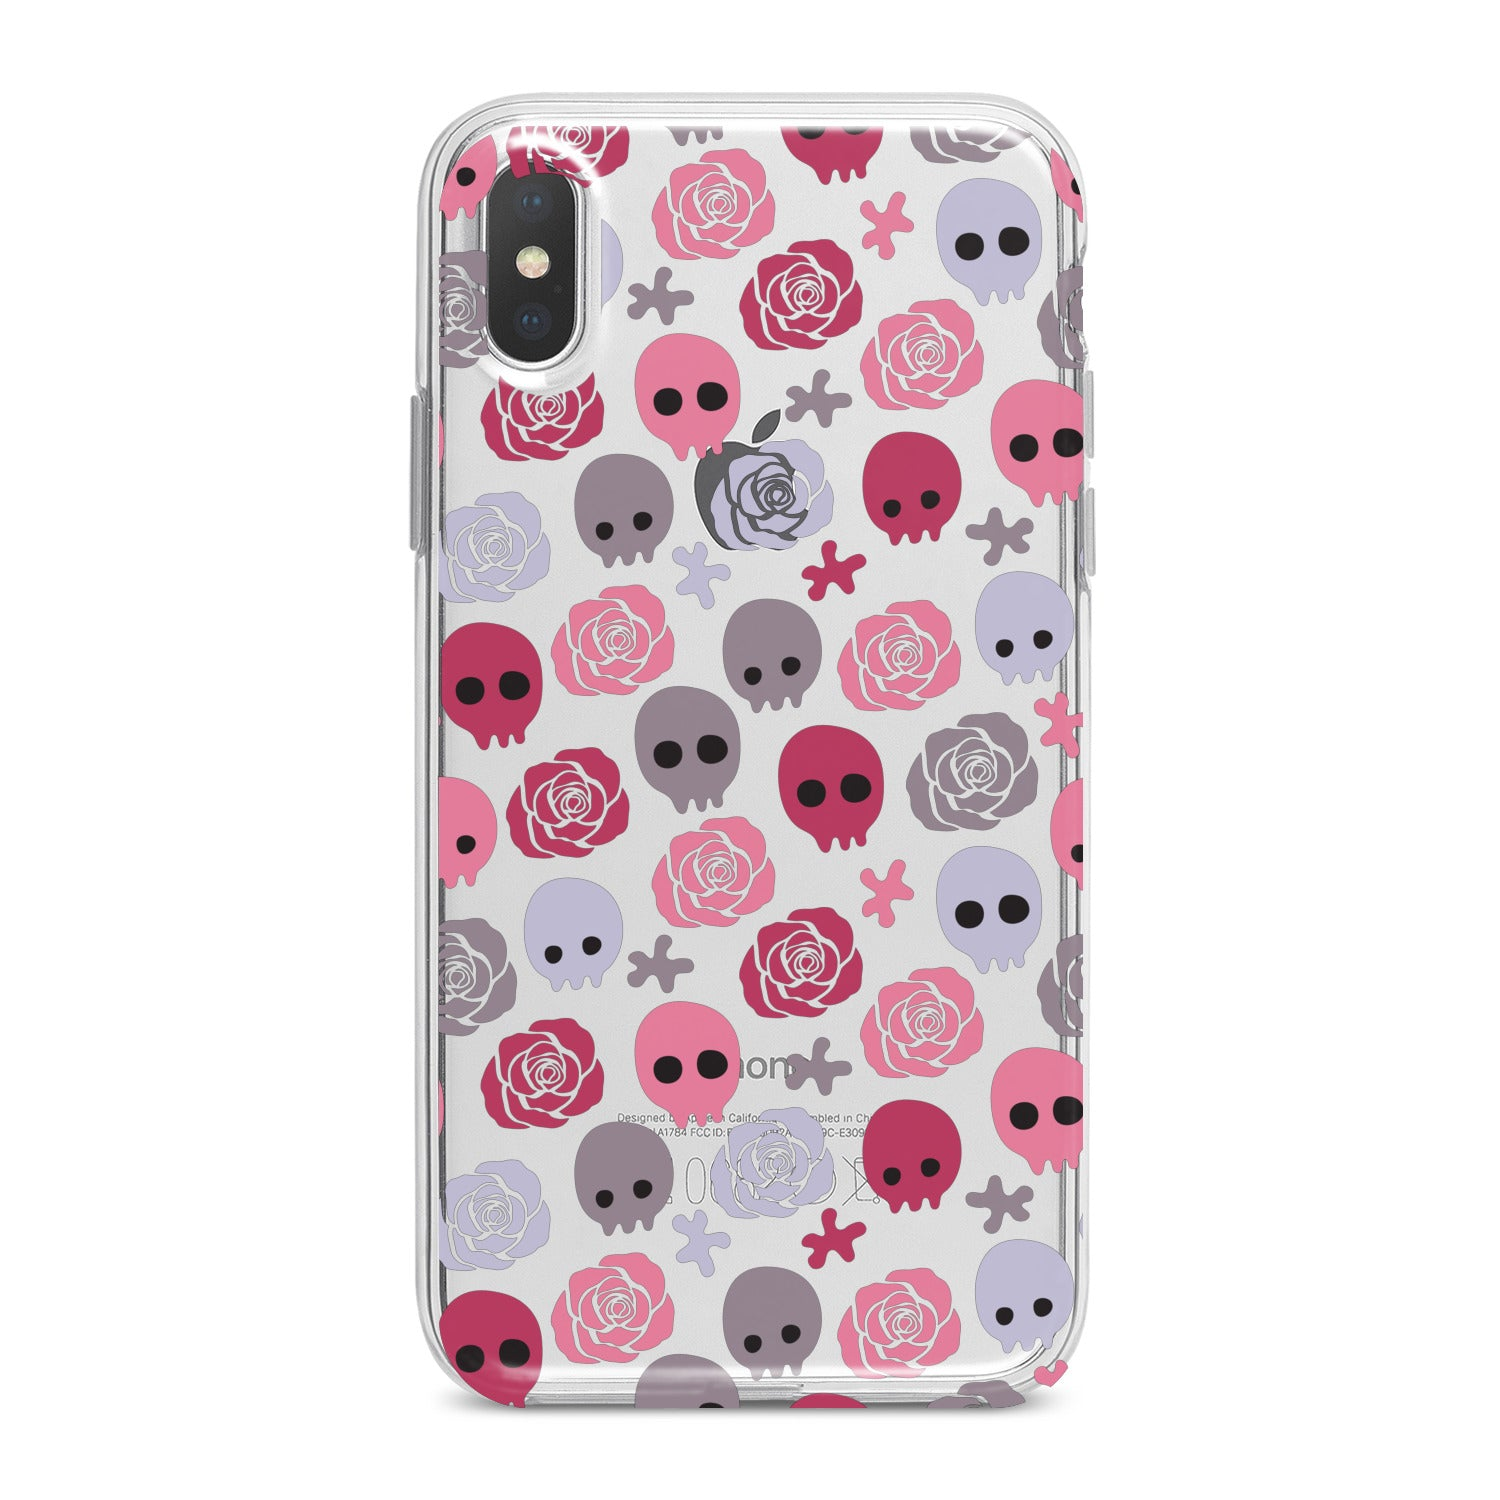 Lex Altern Floral Skulls Phone Case for your iPhone & Android phone.